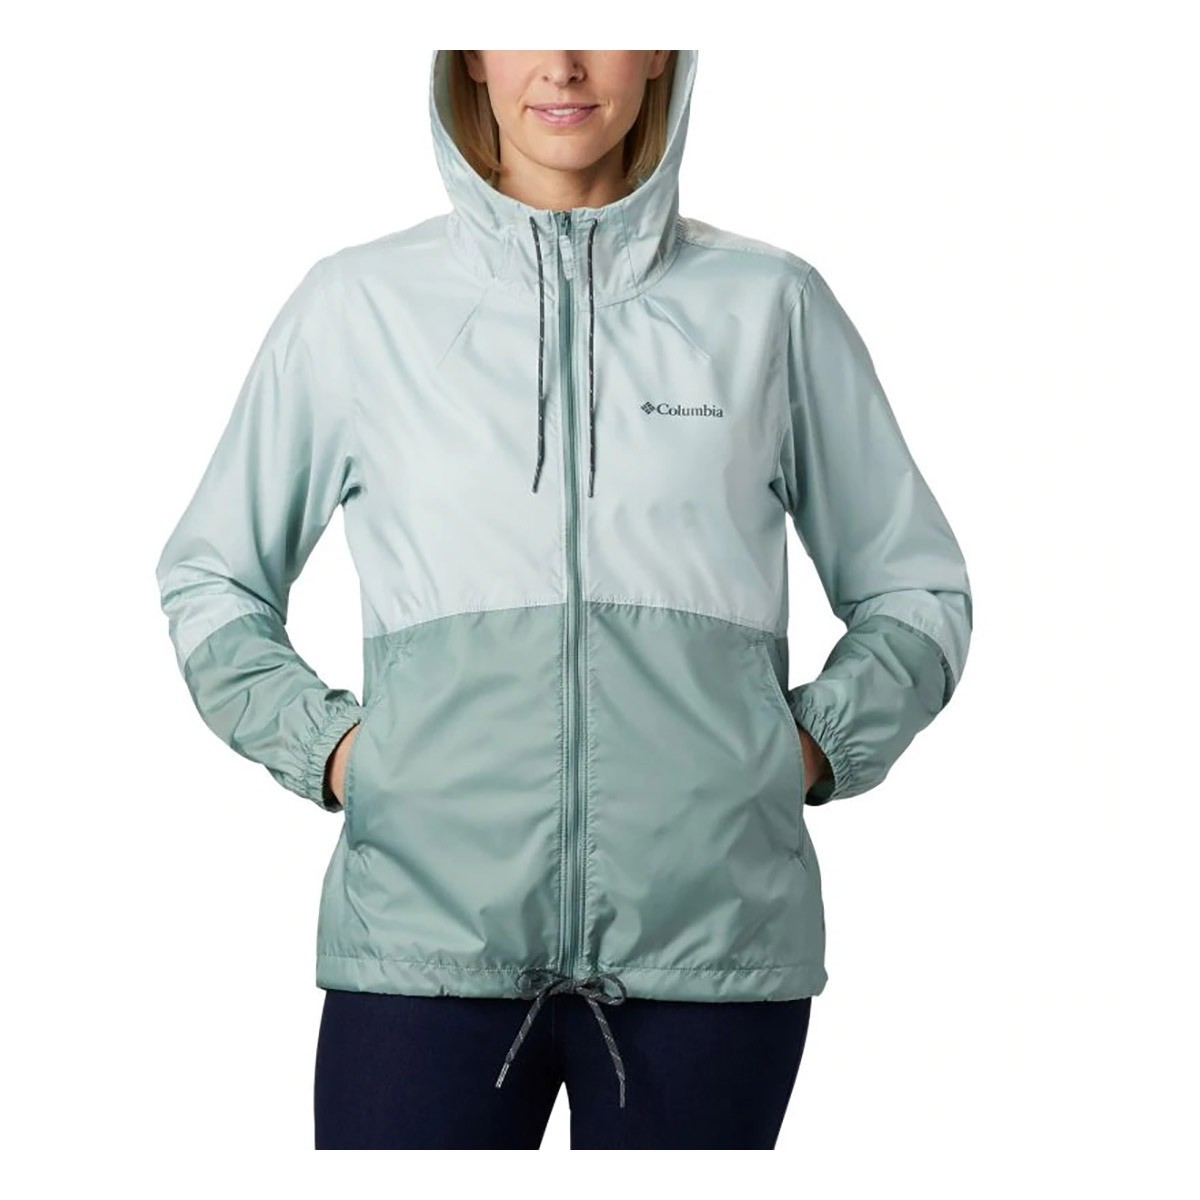 CORTA VENTO COLUMBIA FLASH FORWARD WINDBREAKER  TWILIGHT